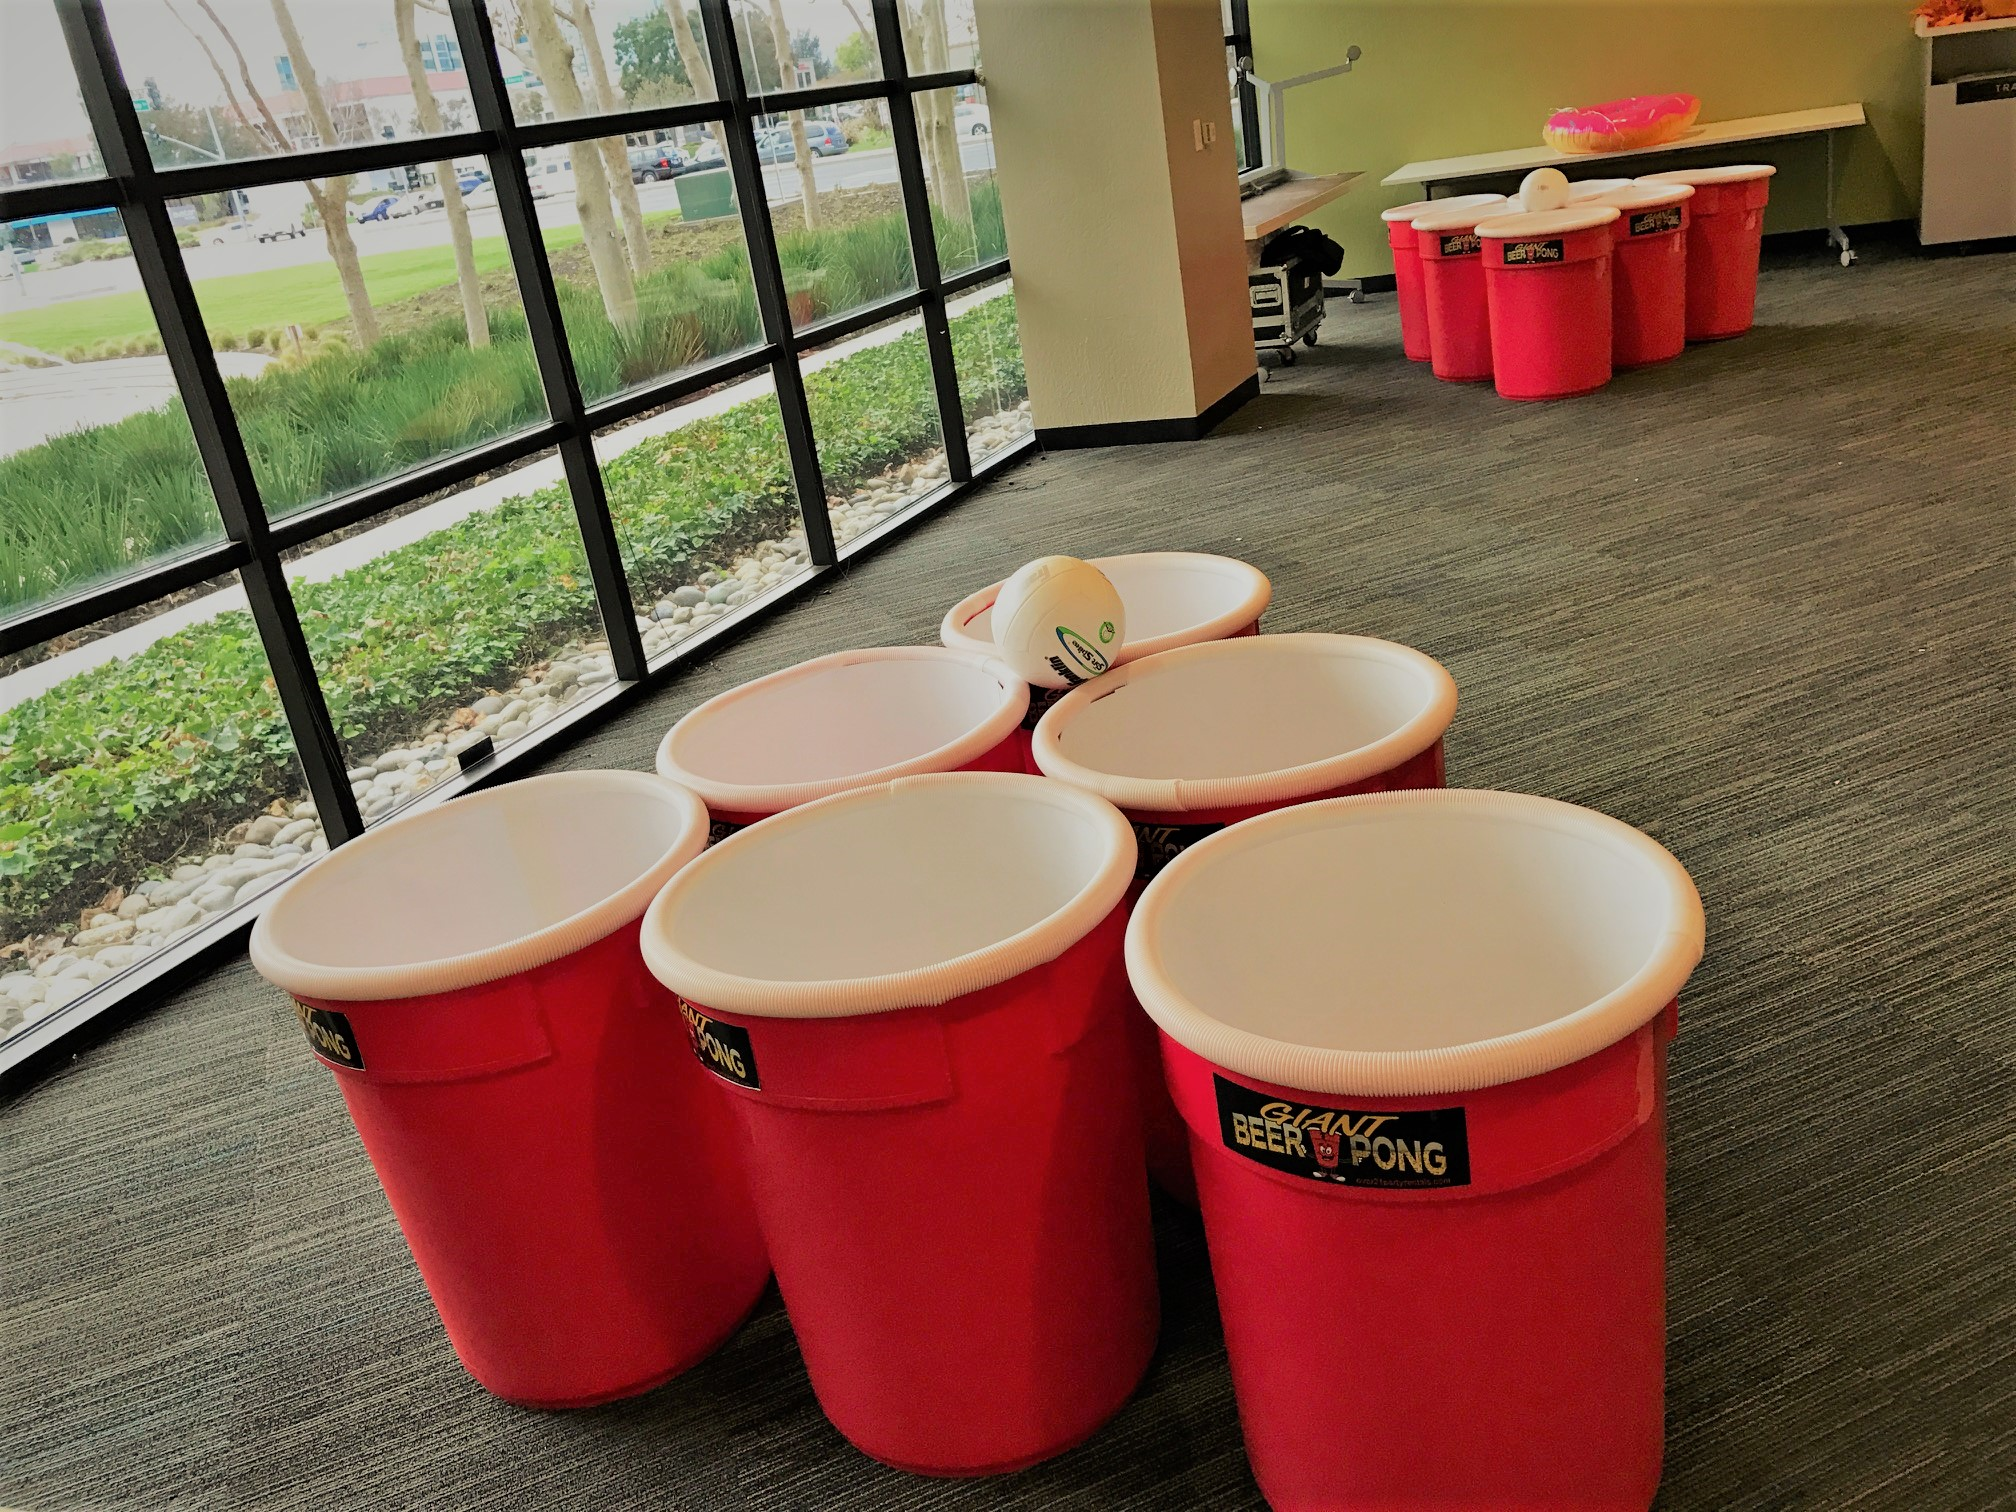 Giant Beer Pong Game Rentals